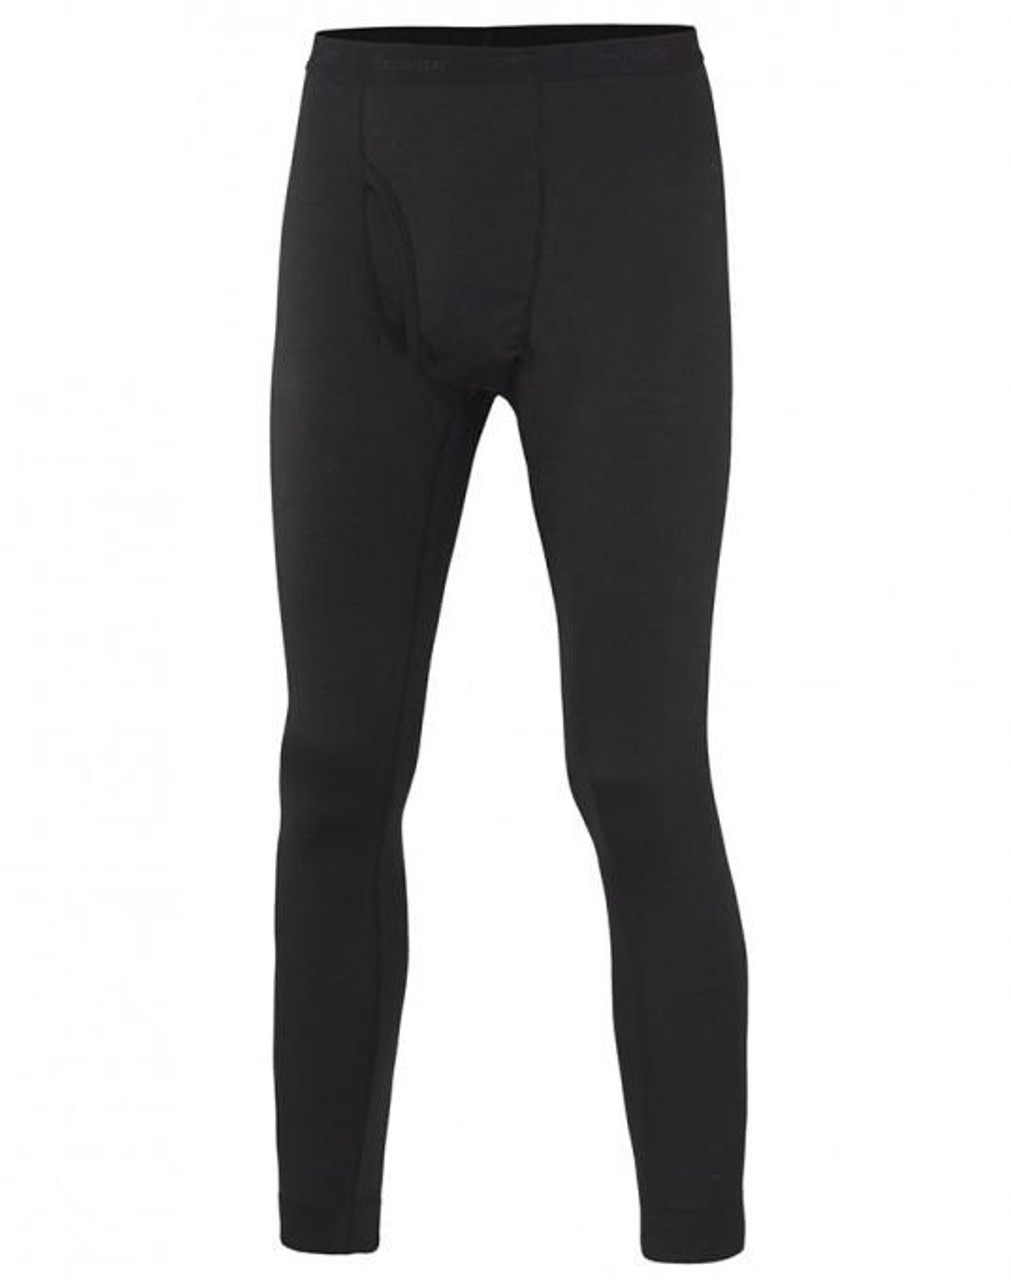 Terramar 2-Layer Authentic Thermal Mid-Weight Pants